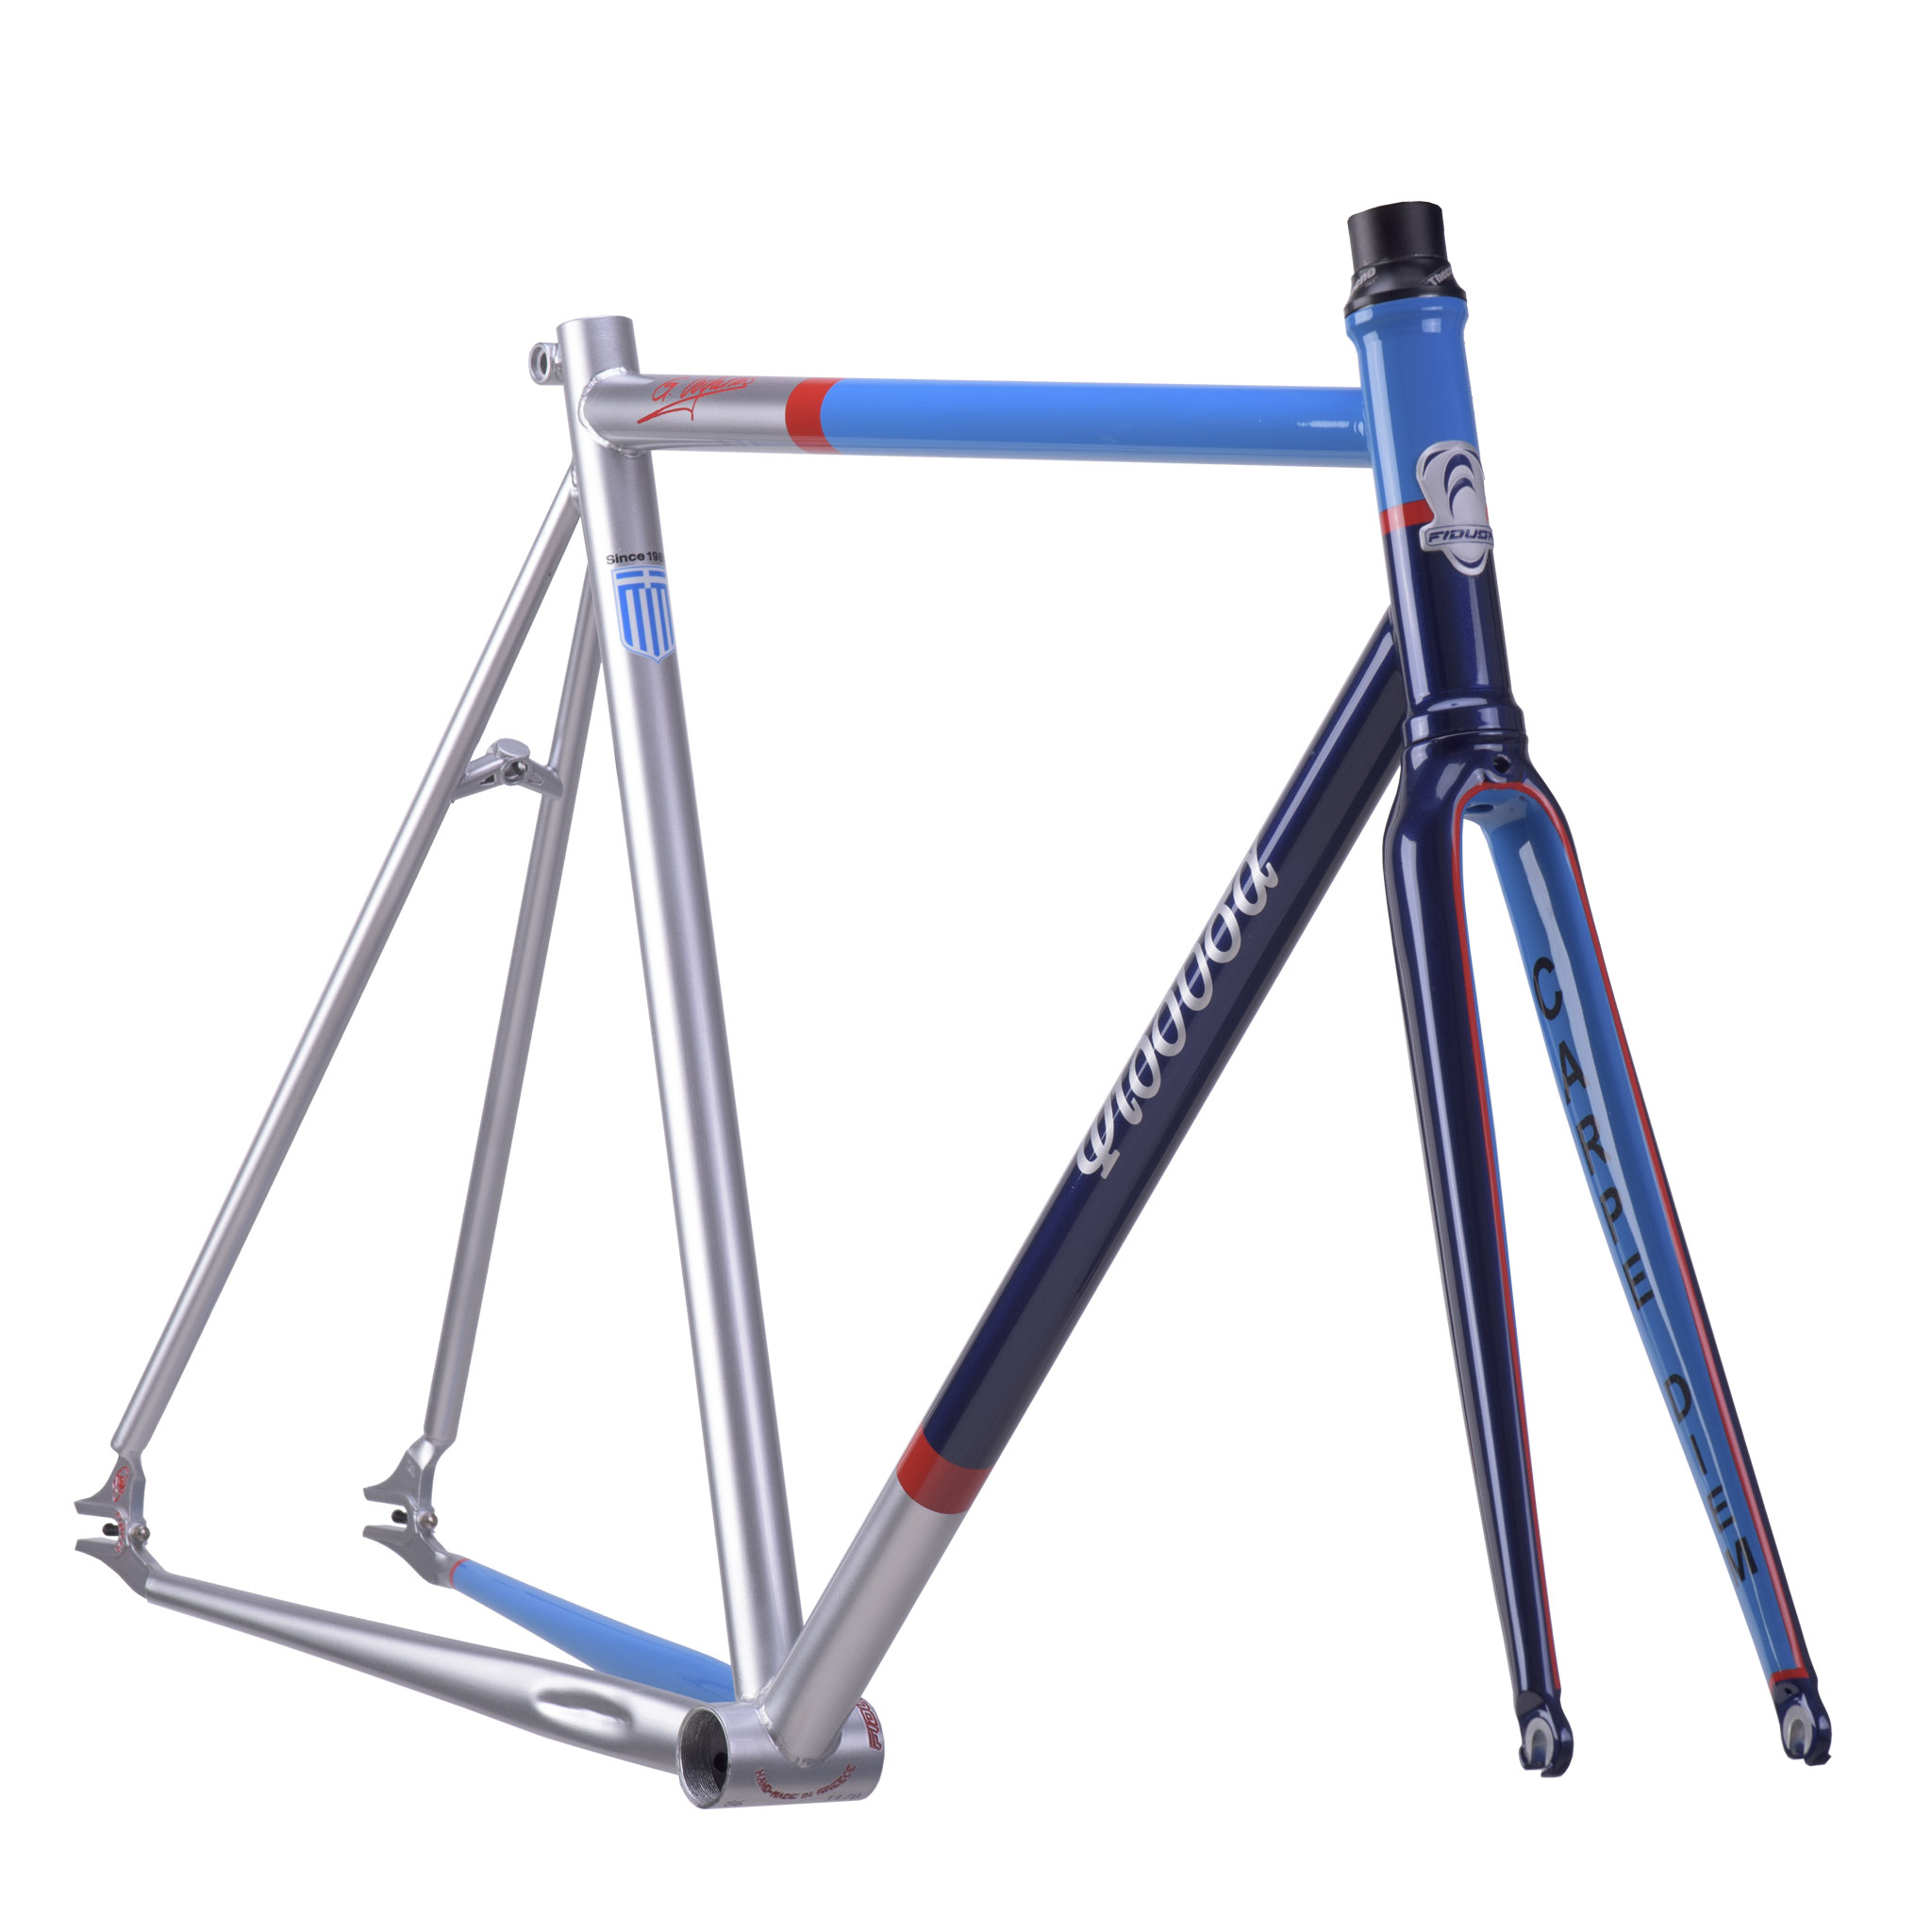 STATHIS-FIX-FRAME-CLEAR O Single Speed σκελετός του Στάθη